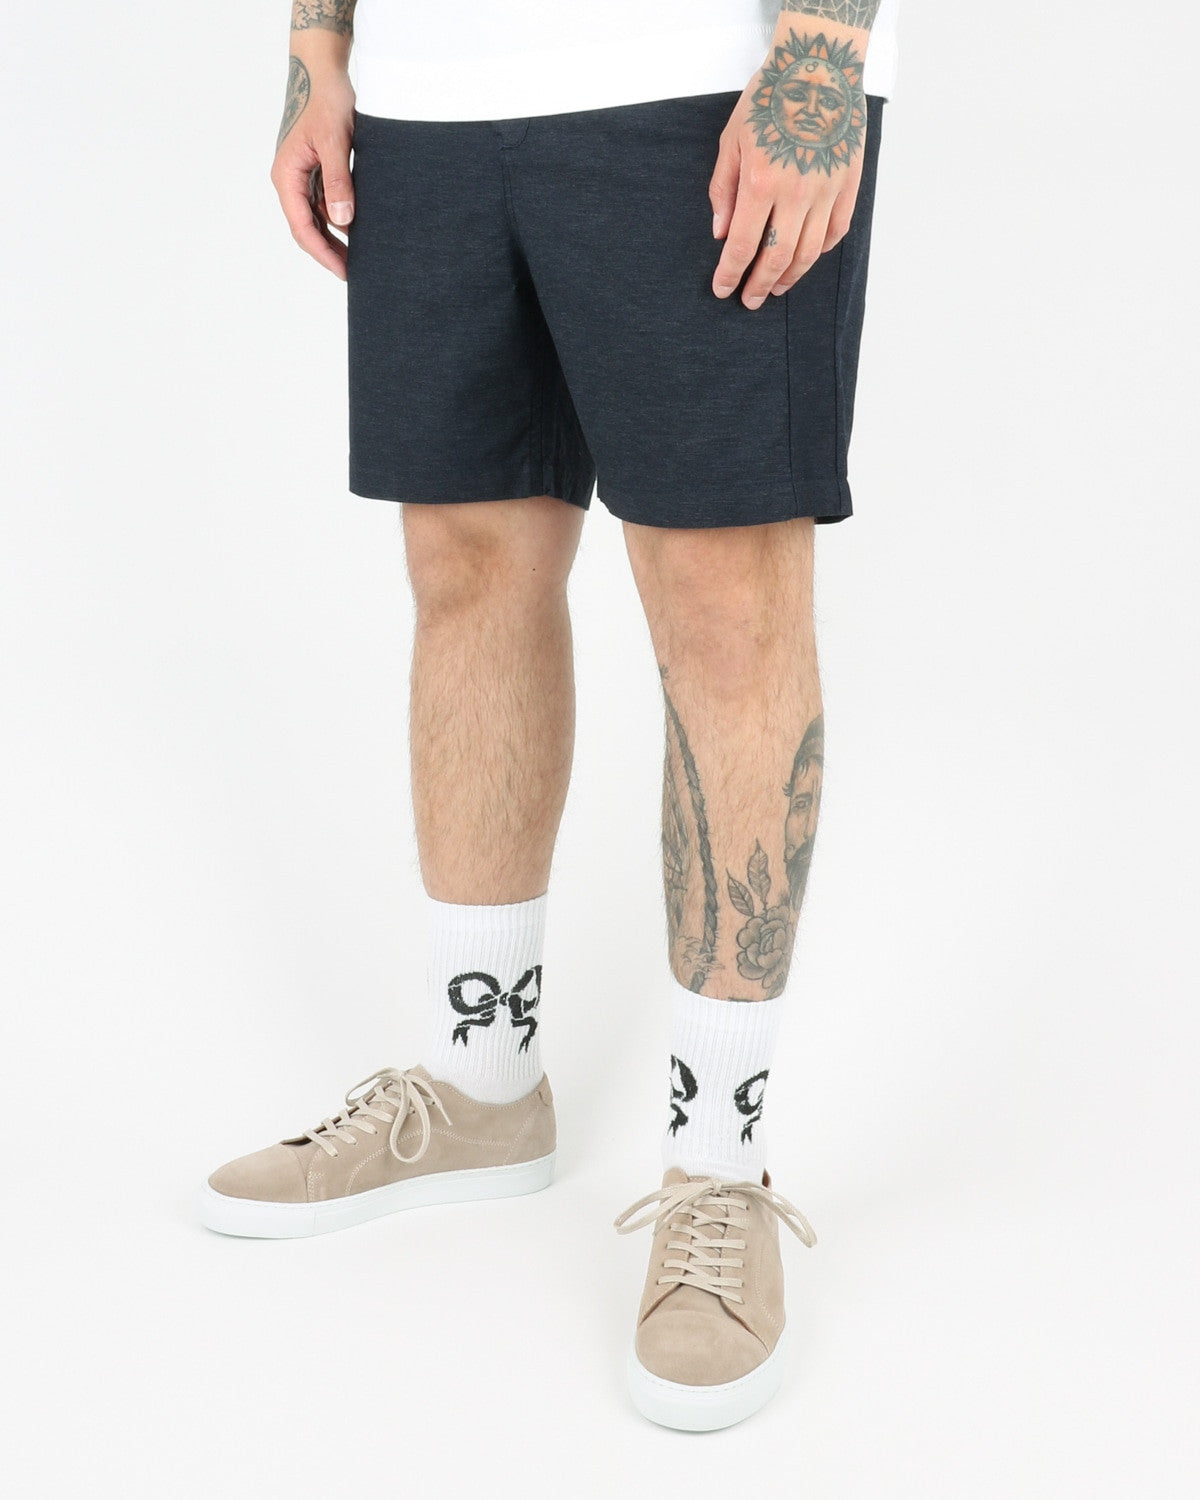 journal clothing_taper theo oxford shorts_navy_view_3_3